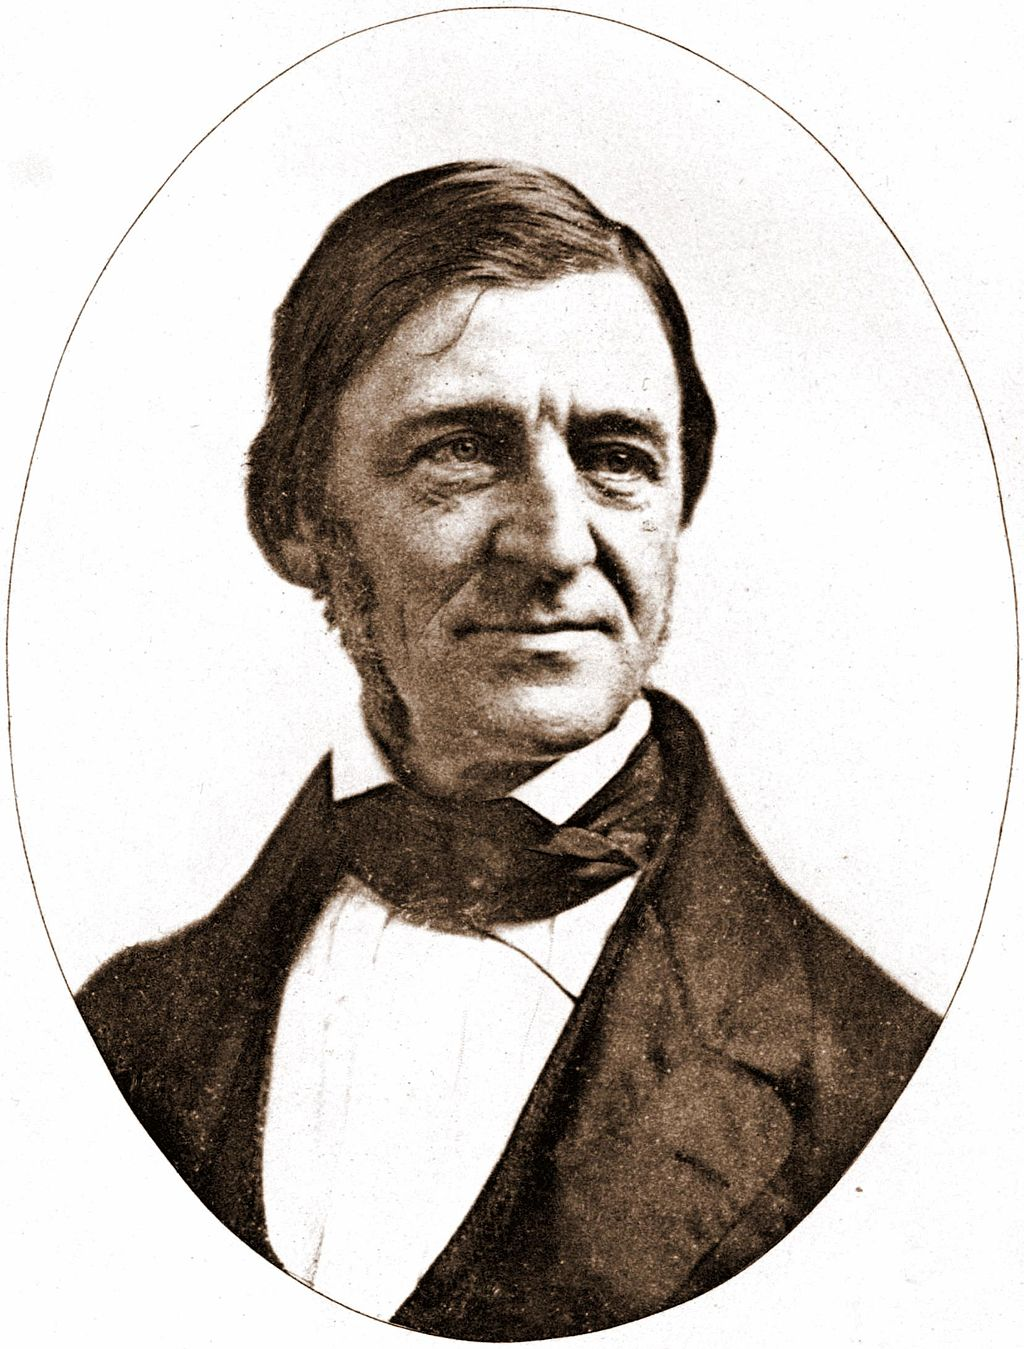 english th c u s literature emerson self reliance 1841 respondent jack emerson experience 1844 respondent jillian feb 13